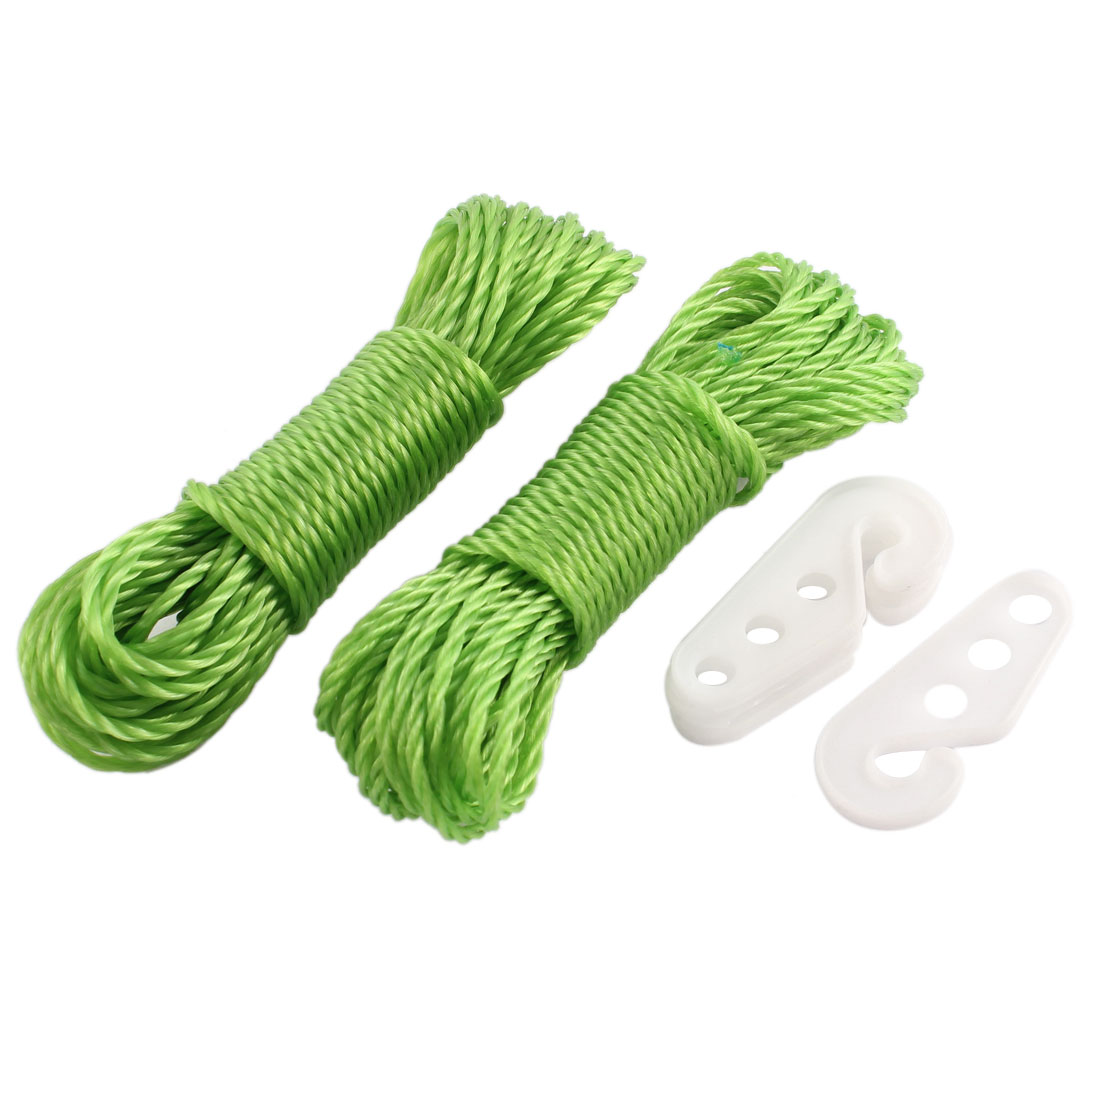 Camping Household Green Twisted Clothesline Clothes Hanging Line Rope String w Hooks 10m Length 2pcs